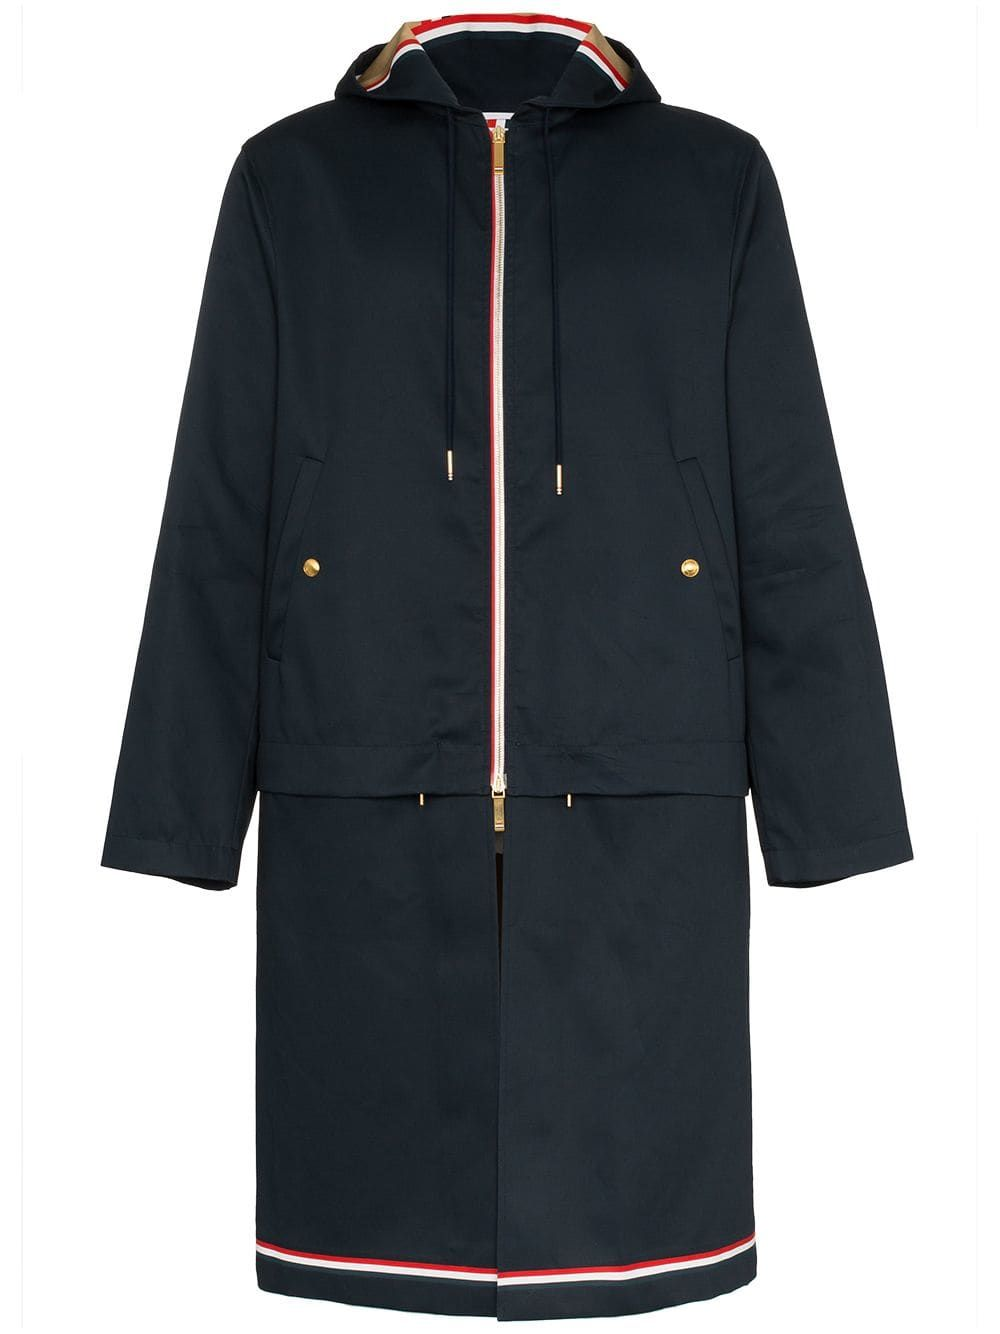 3f0c8452a04 THOM BROWNE THOM BROWNE THOM B DTCHBL HDDED PARKA NVY - BLUE.  thombrowne